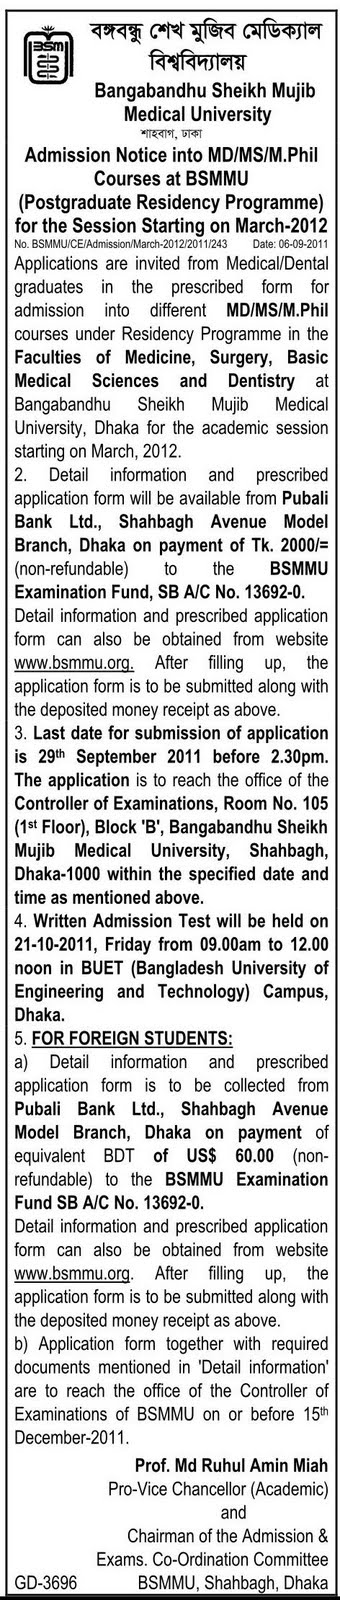 BSMMU+Admission+in+MD MS M.Phil+Course Admission notice into MD / MS / M.Phil courses at BSMMU 2011   12